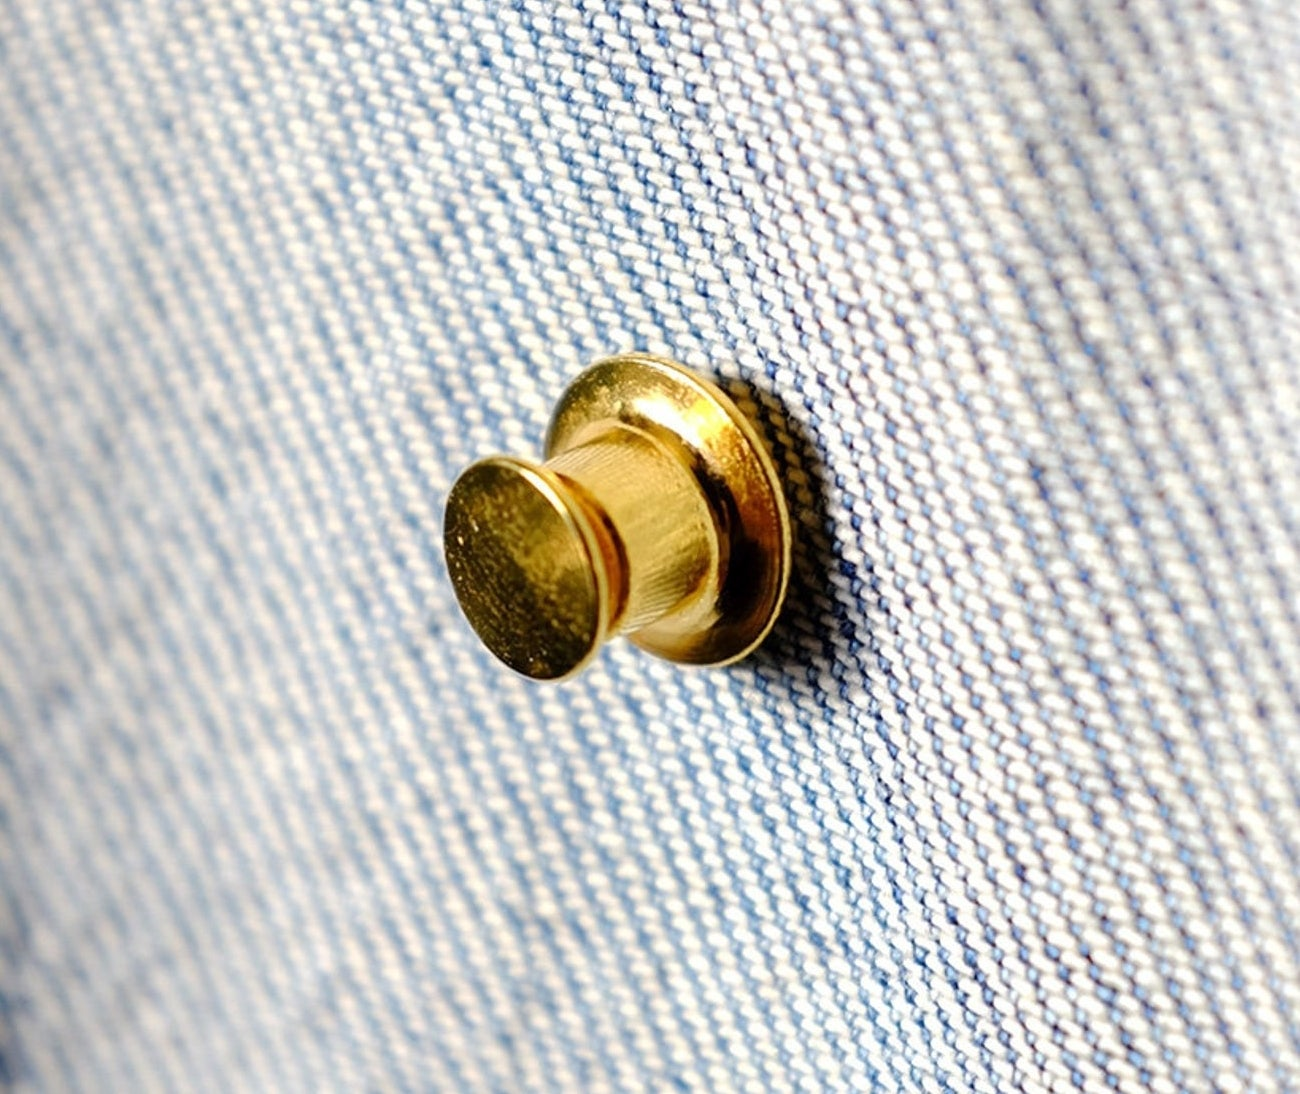 A gold pin backing on the inside of a denim jacket